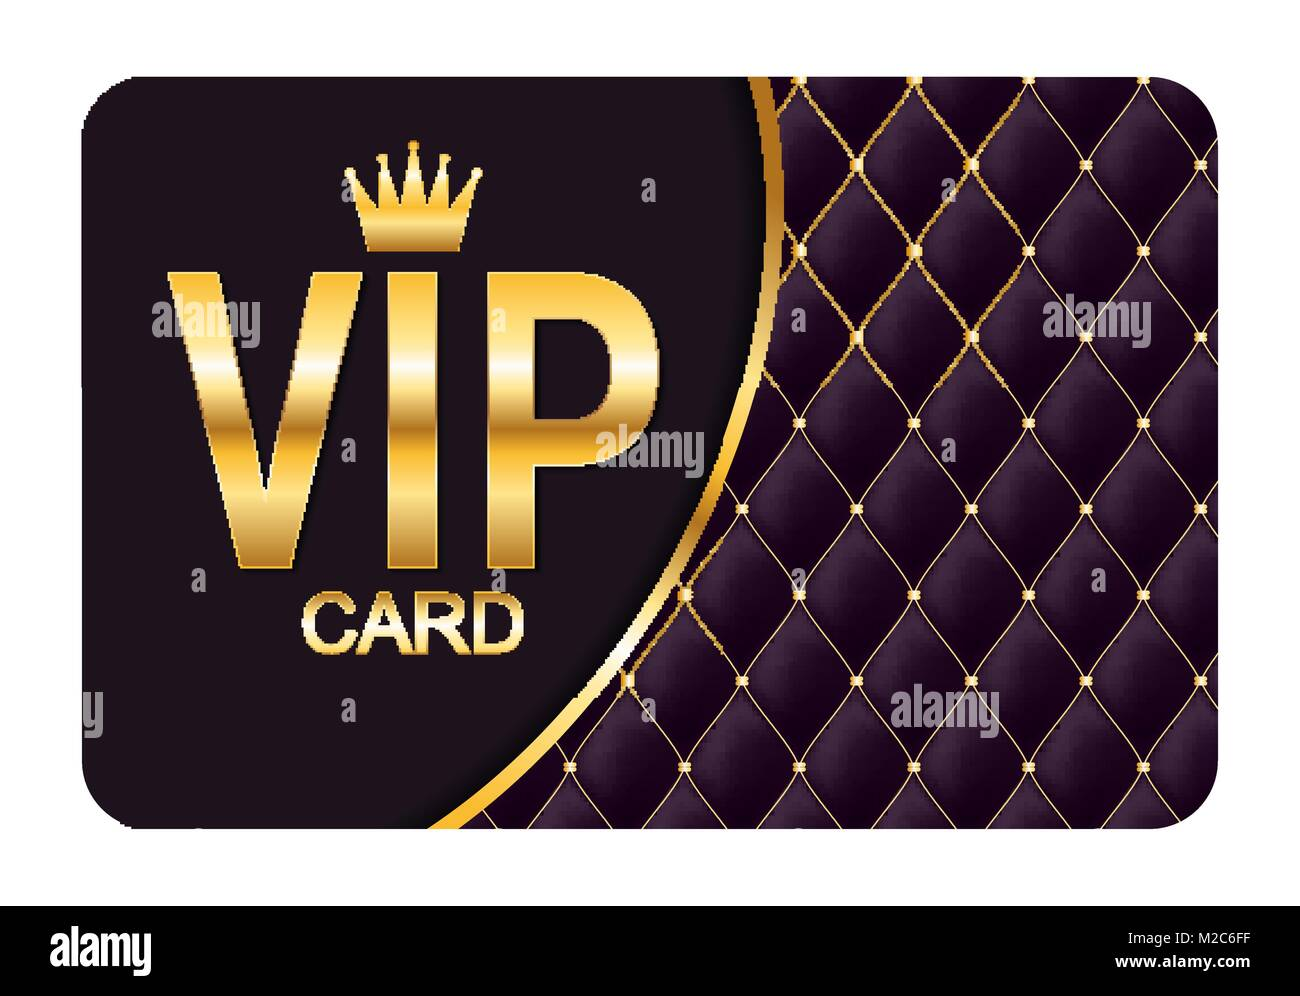 Create Free Gift Cards For Your Business Gallery - Card Design And ...